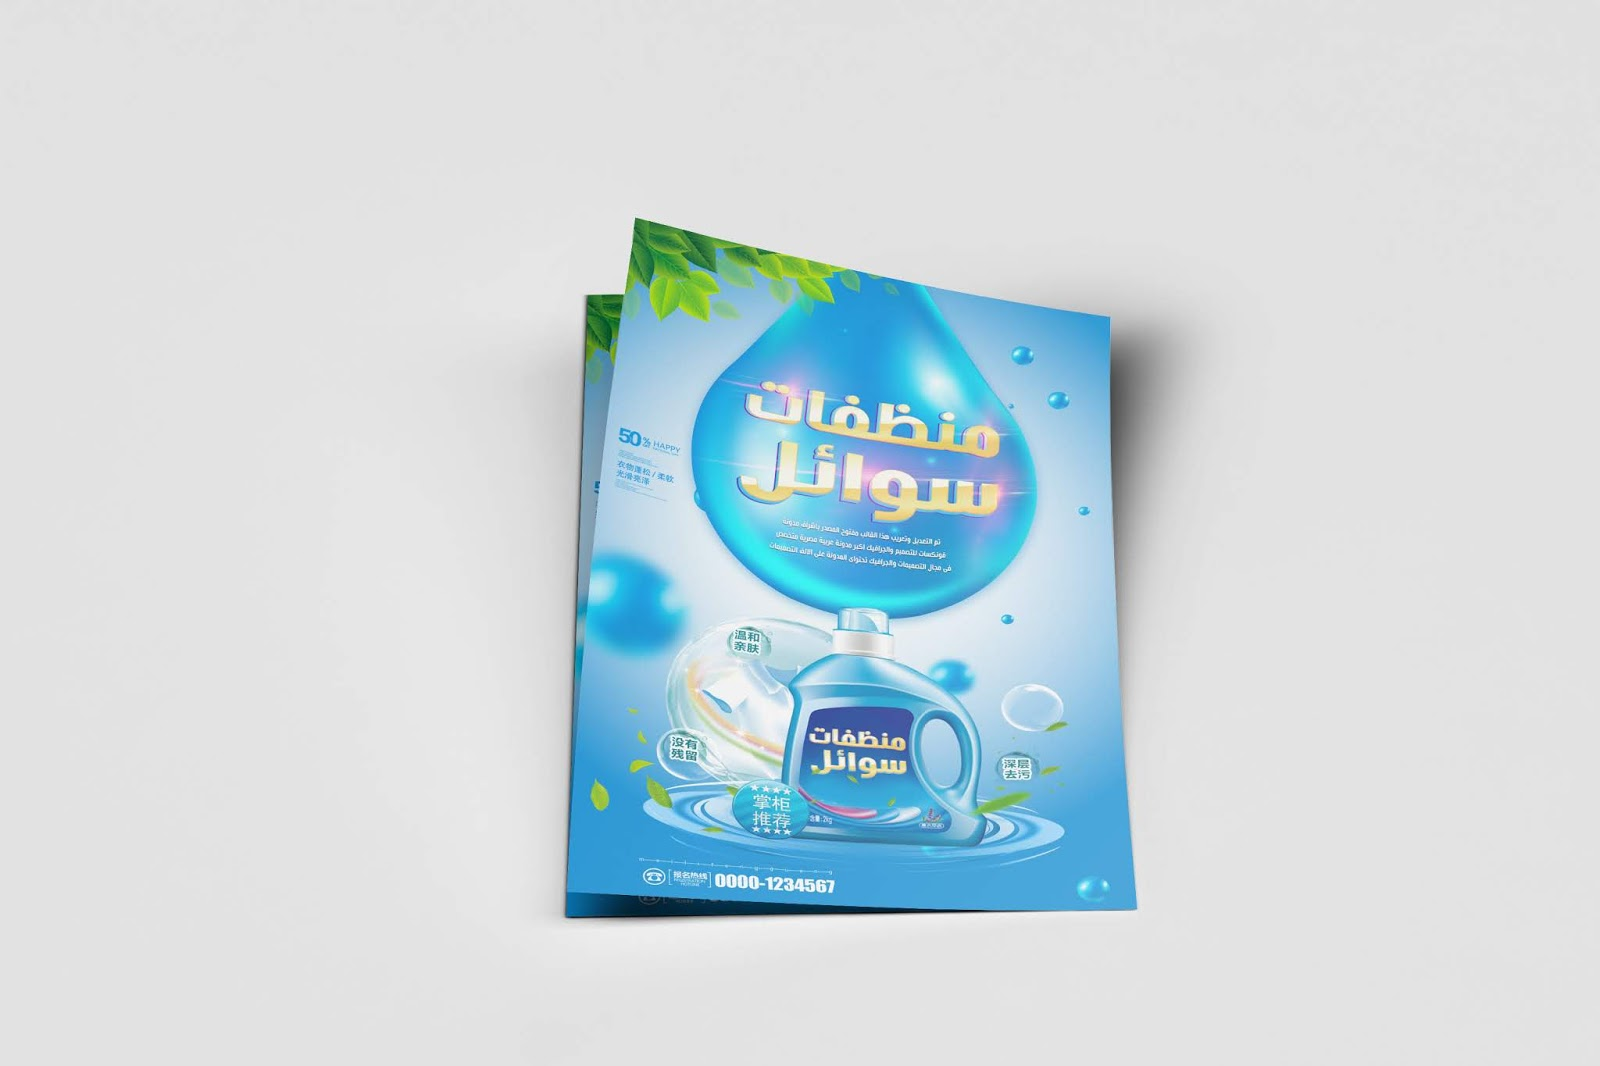 Detective Photoshop PSD design for detergents and cleaning fluids